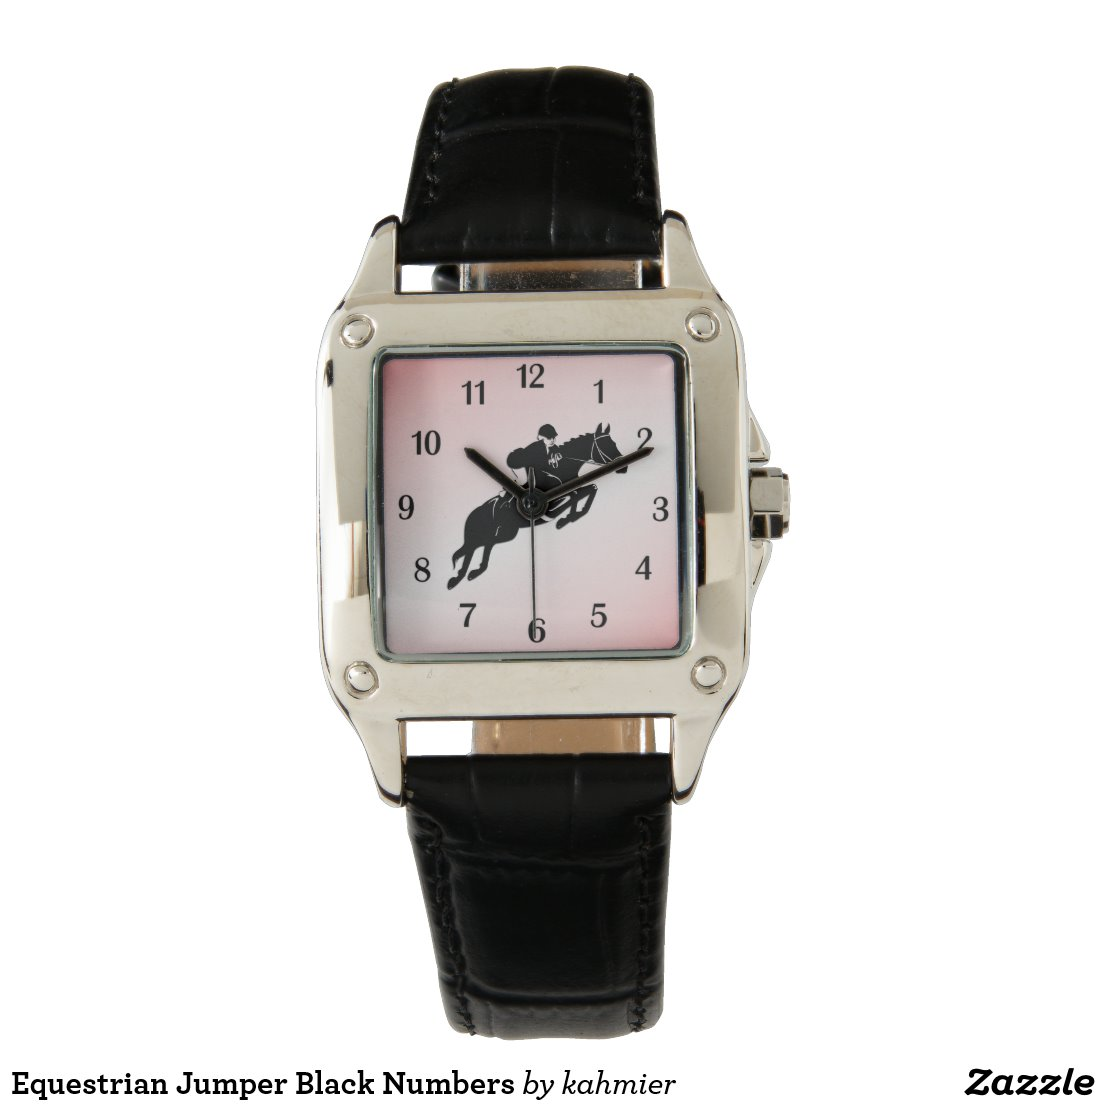 Equestrian Jumper Black Numbers Watch